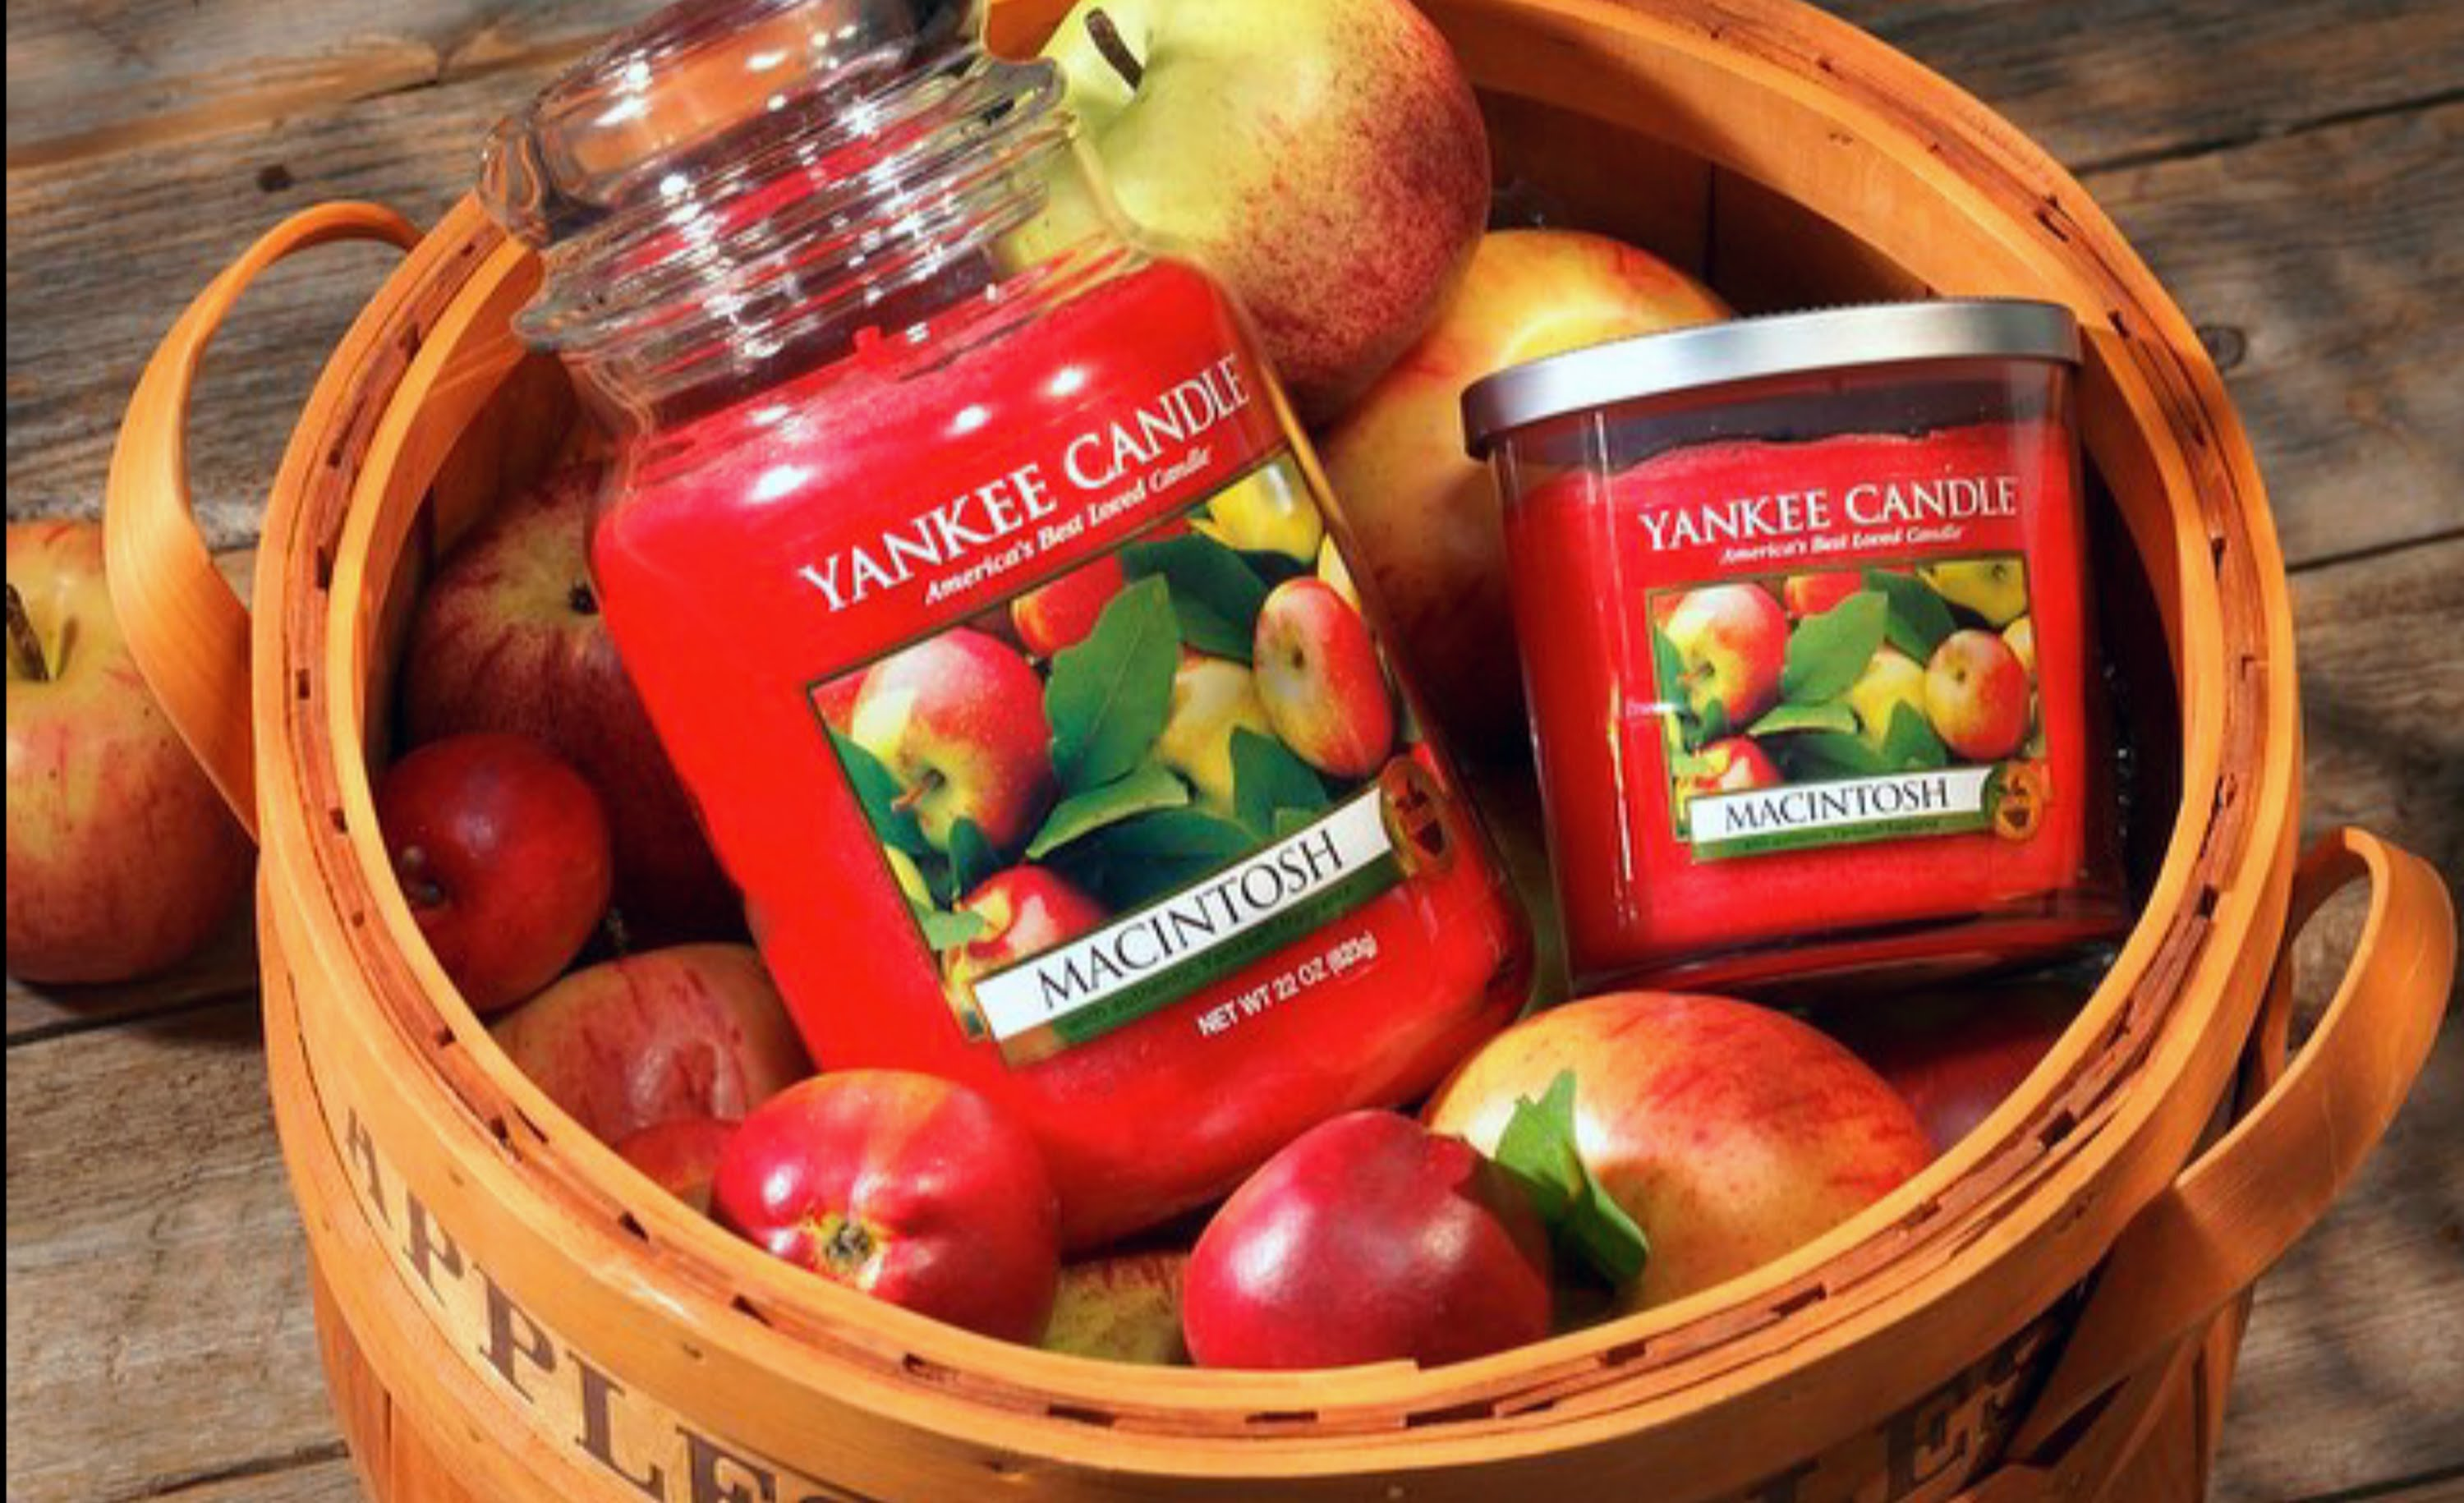 Macintosh Yankee Candle